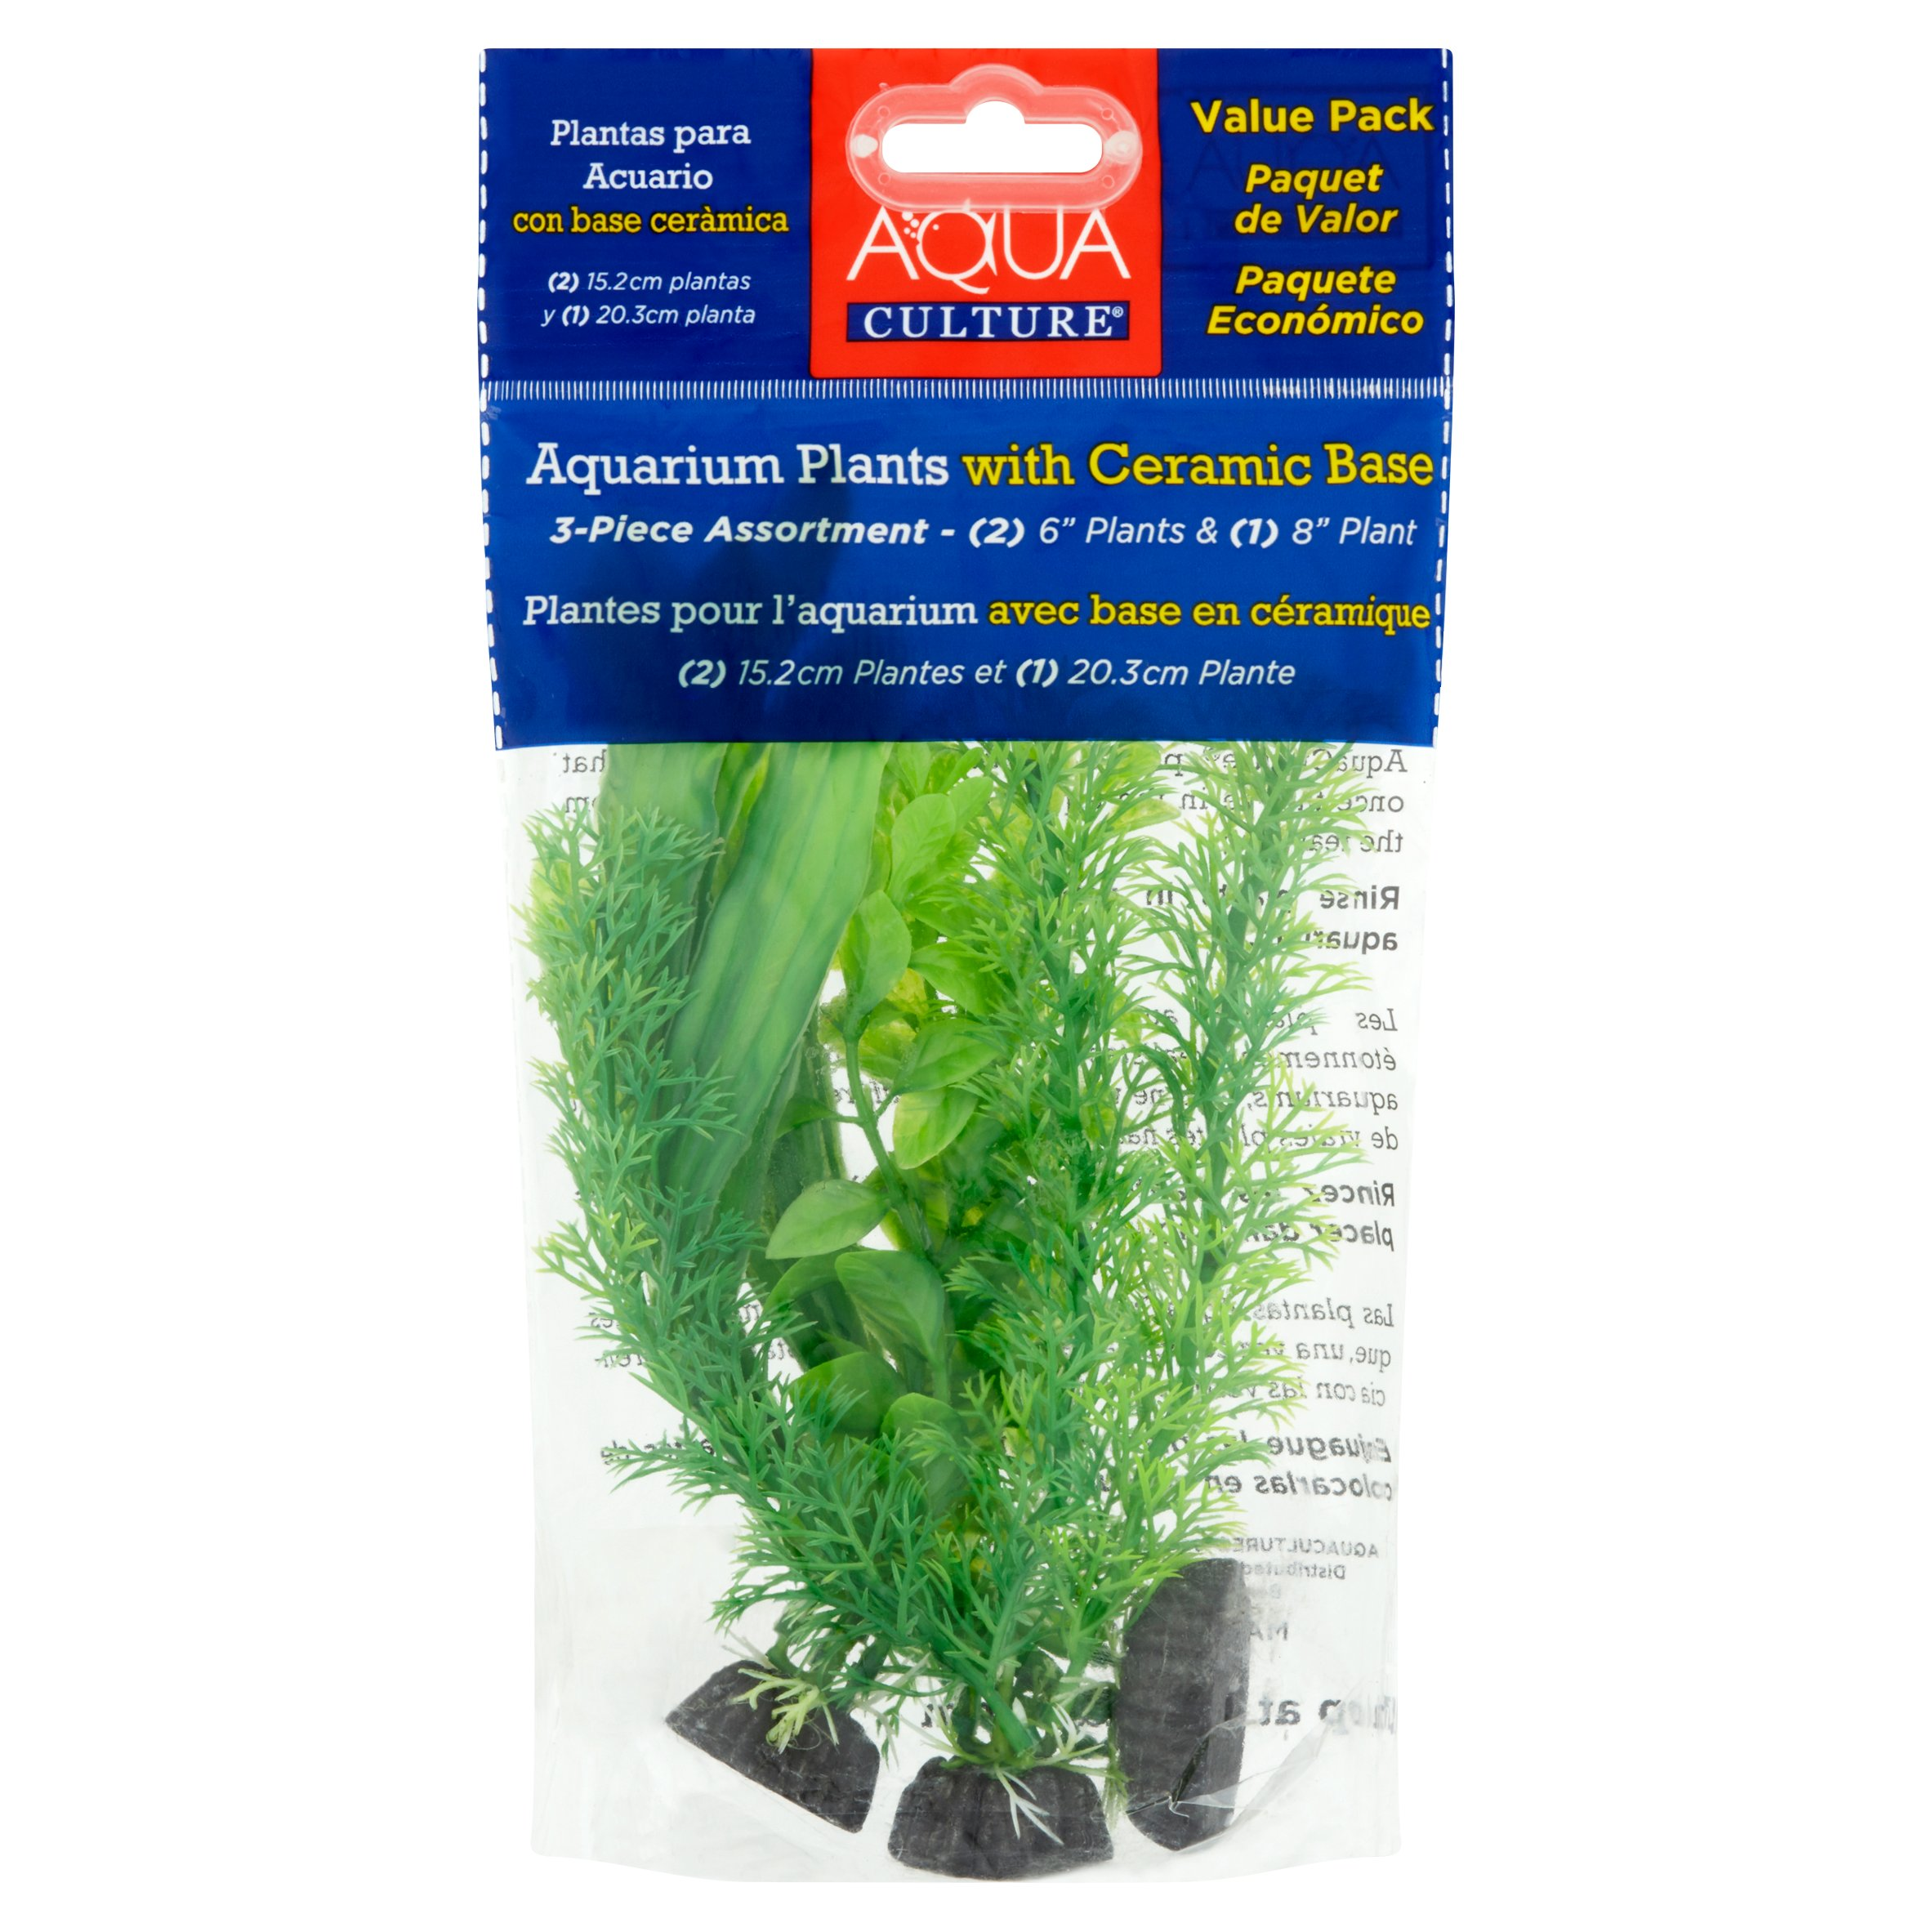 Aqua Culture Aquarium Plant Ornament, 3-Pack